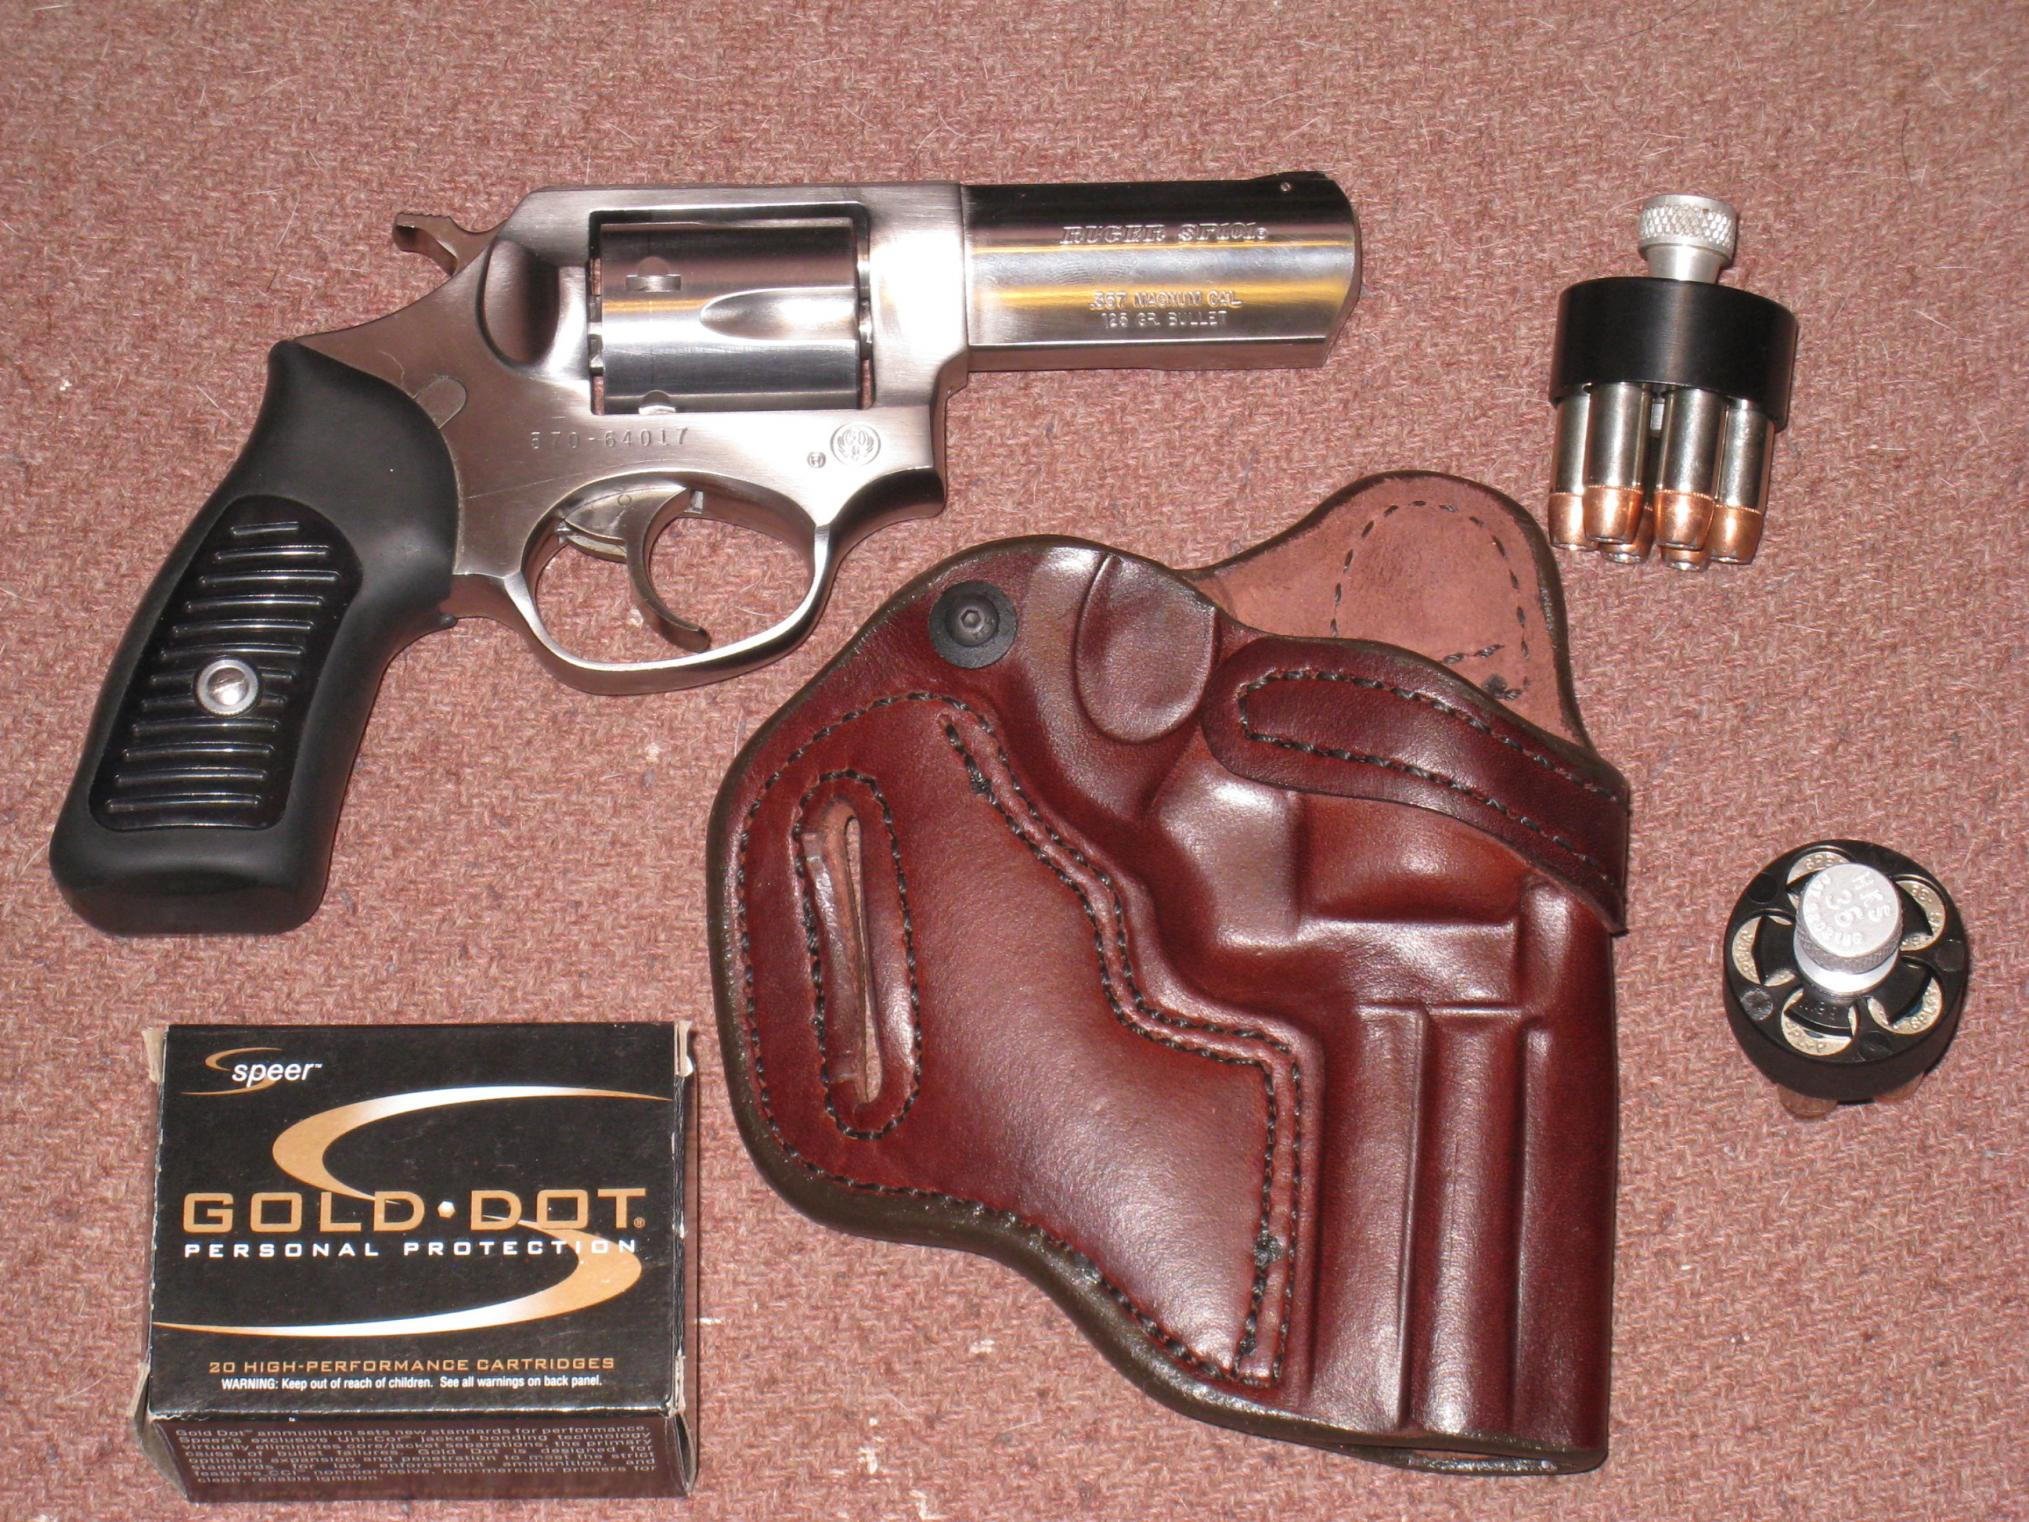 Haugen Handgun Leather-picture-005.jpg